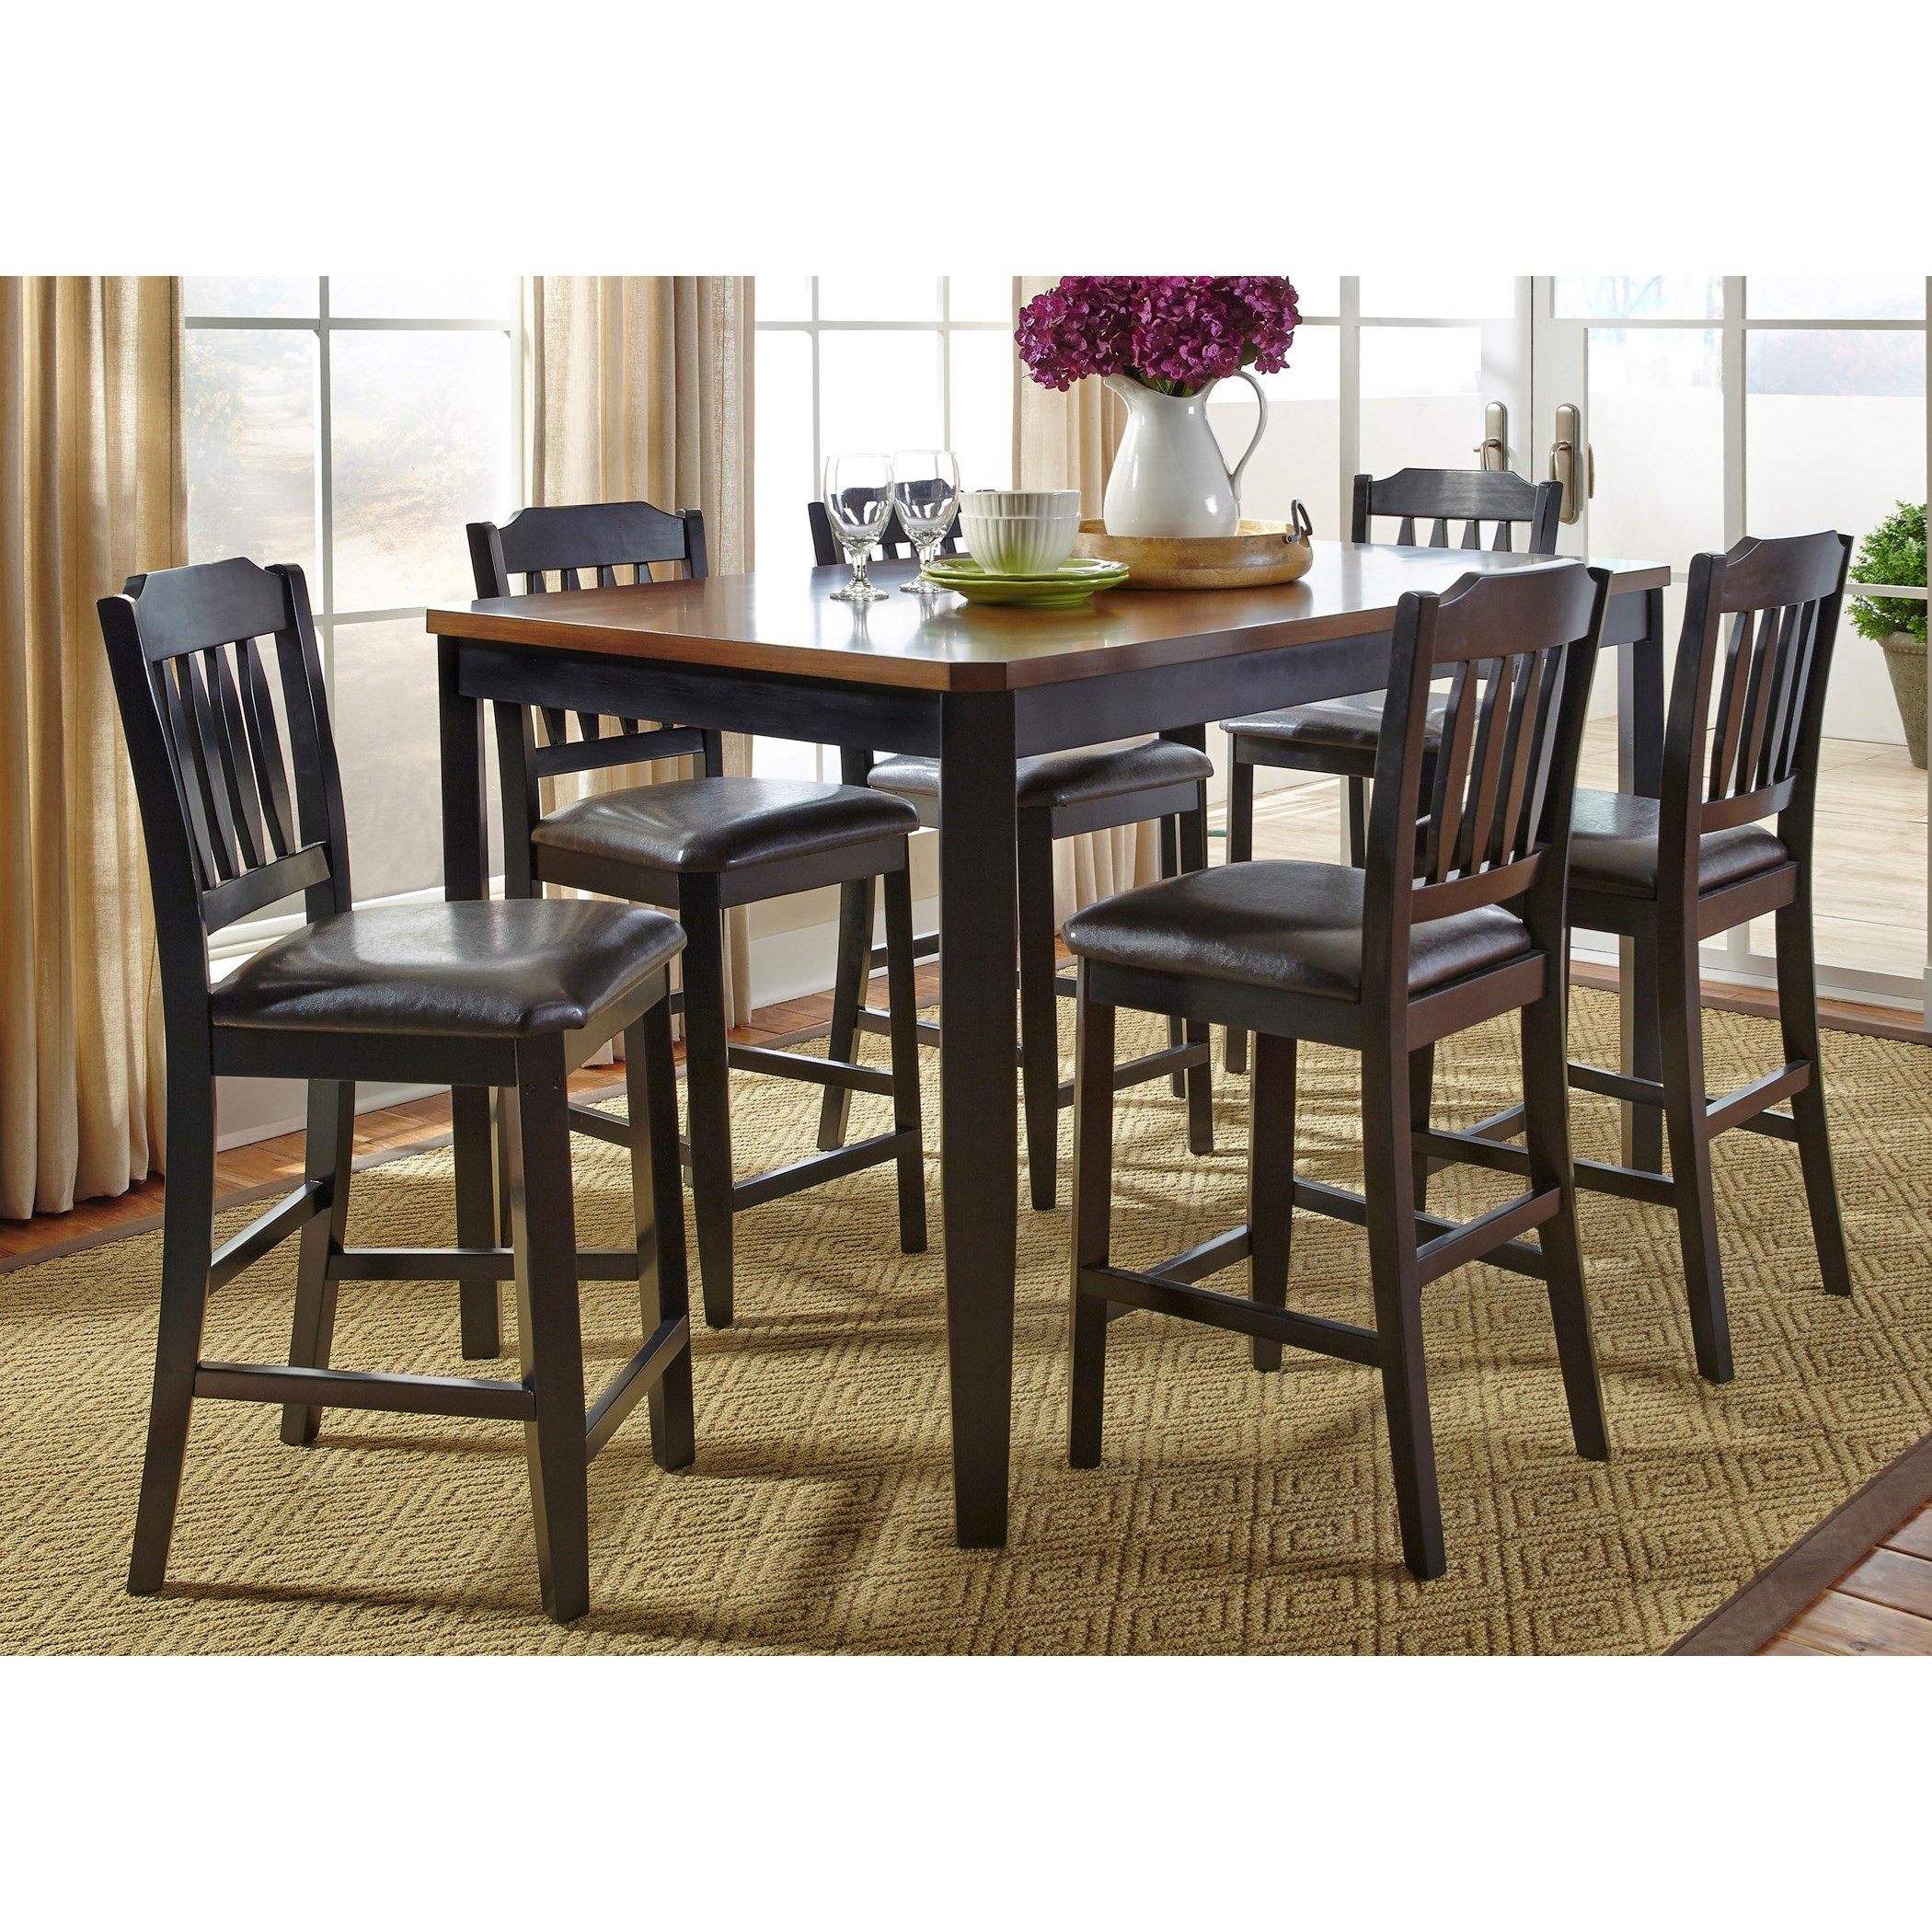 Ashley Furniture Metairie: Liberty Furniture Devonwood 7 Piece Gathering Table Set